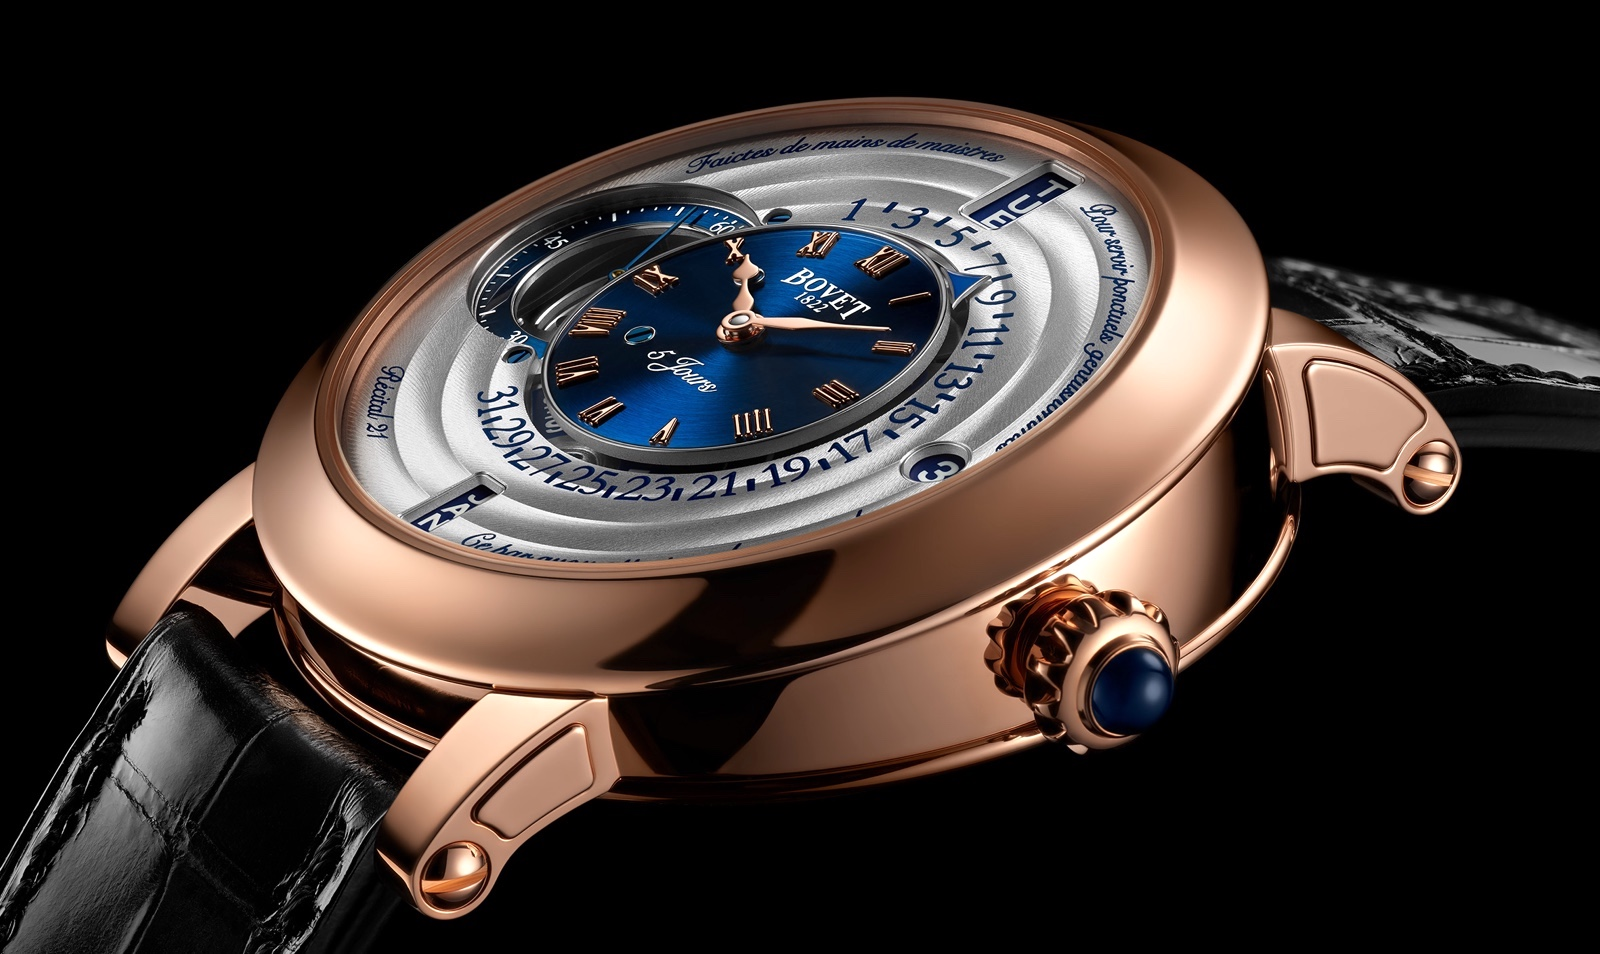 Bovet 1822 Récital 21 Collection SIHH 2019